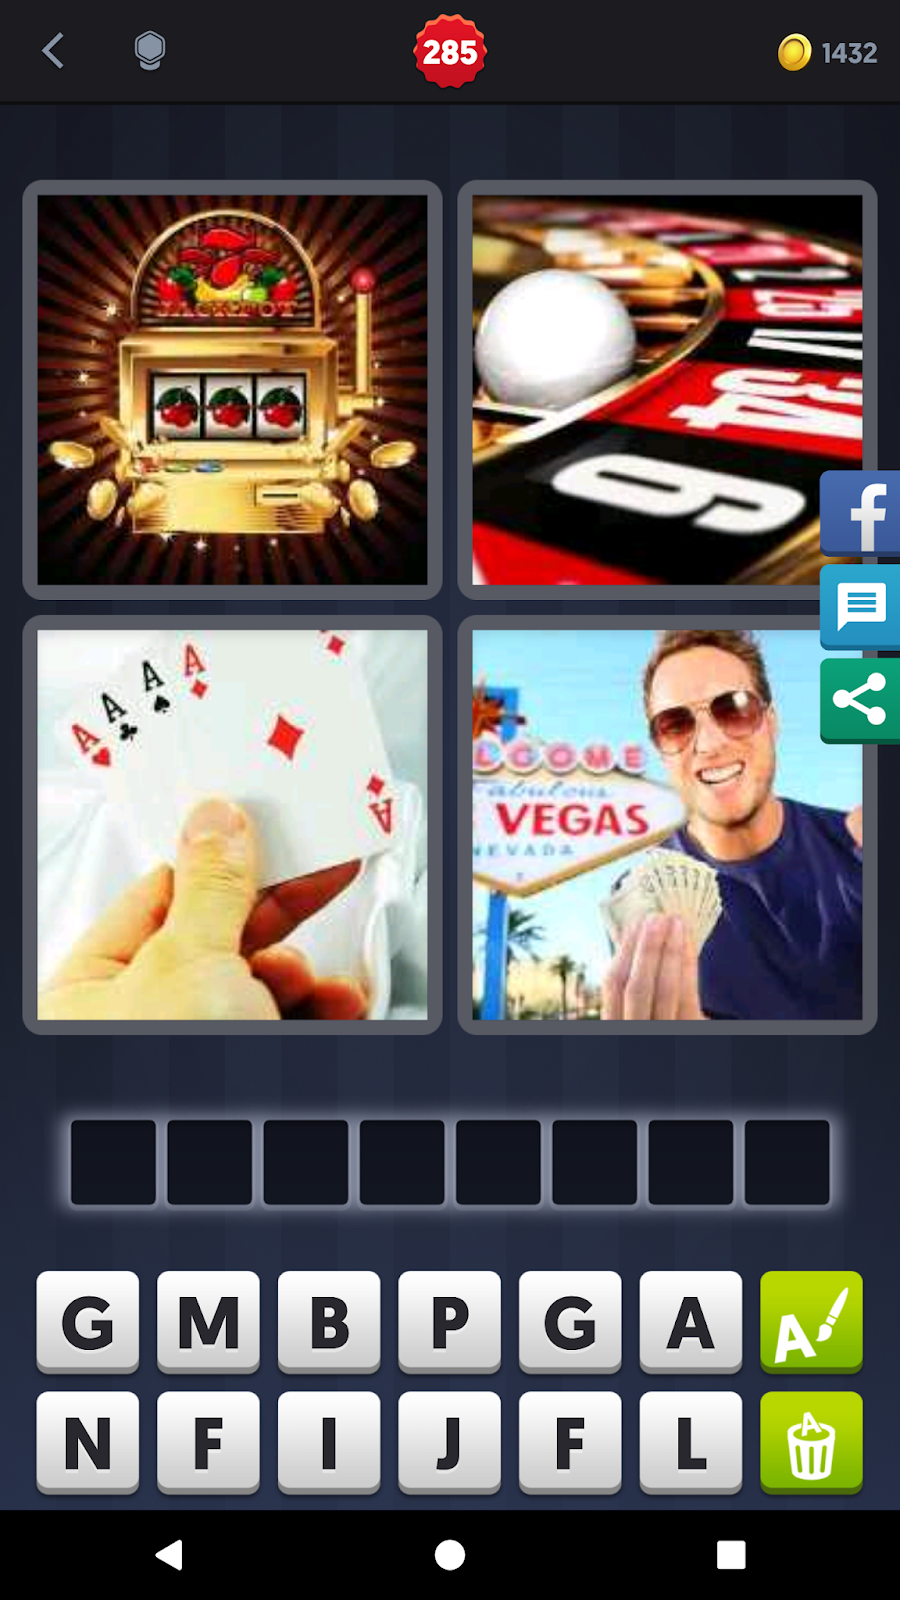 4 Pics 1 Word Answers Solutions Level 285 Gambling